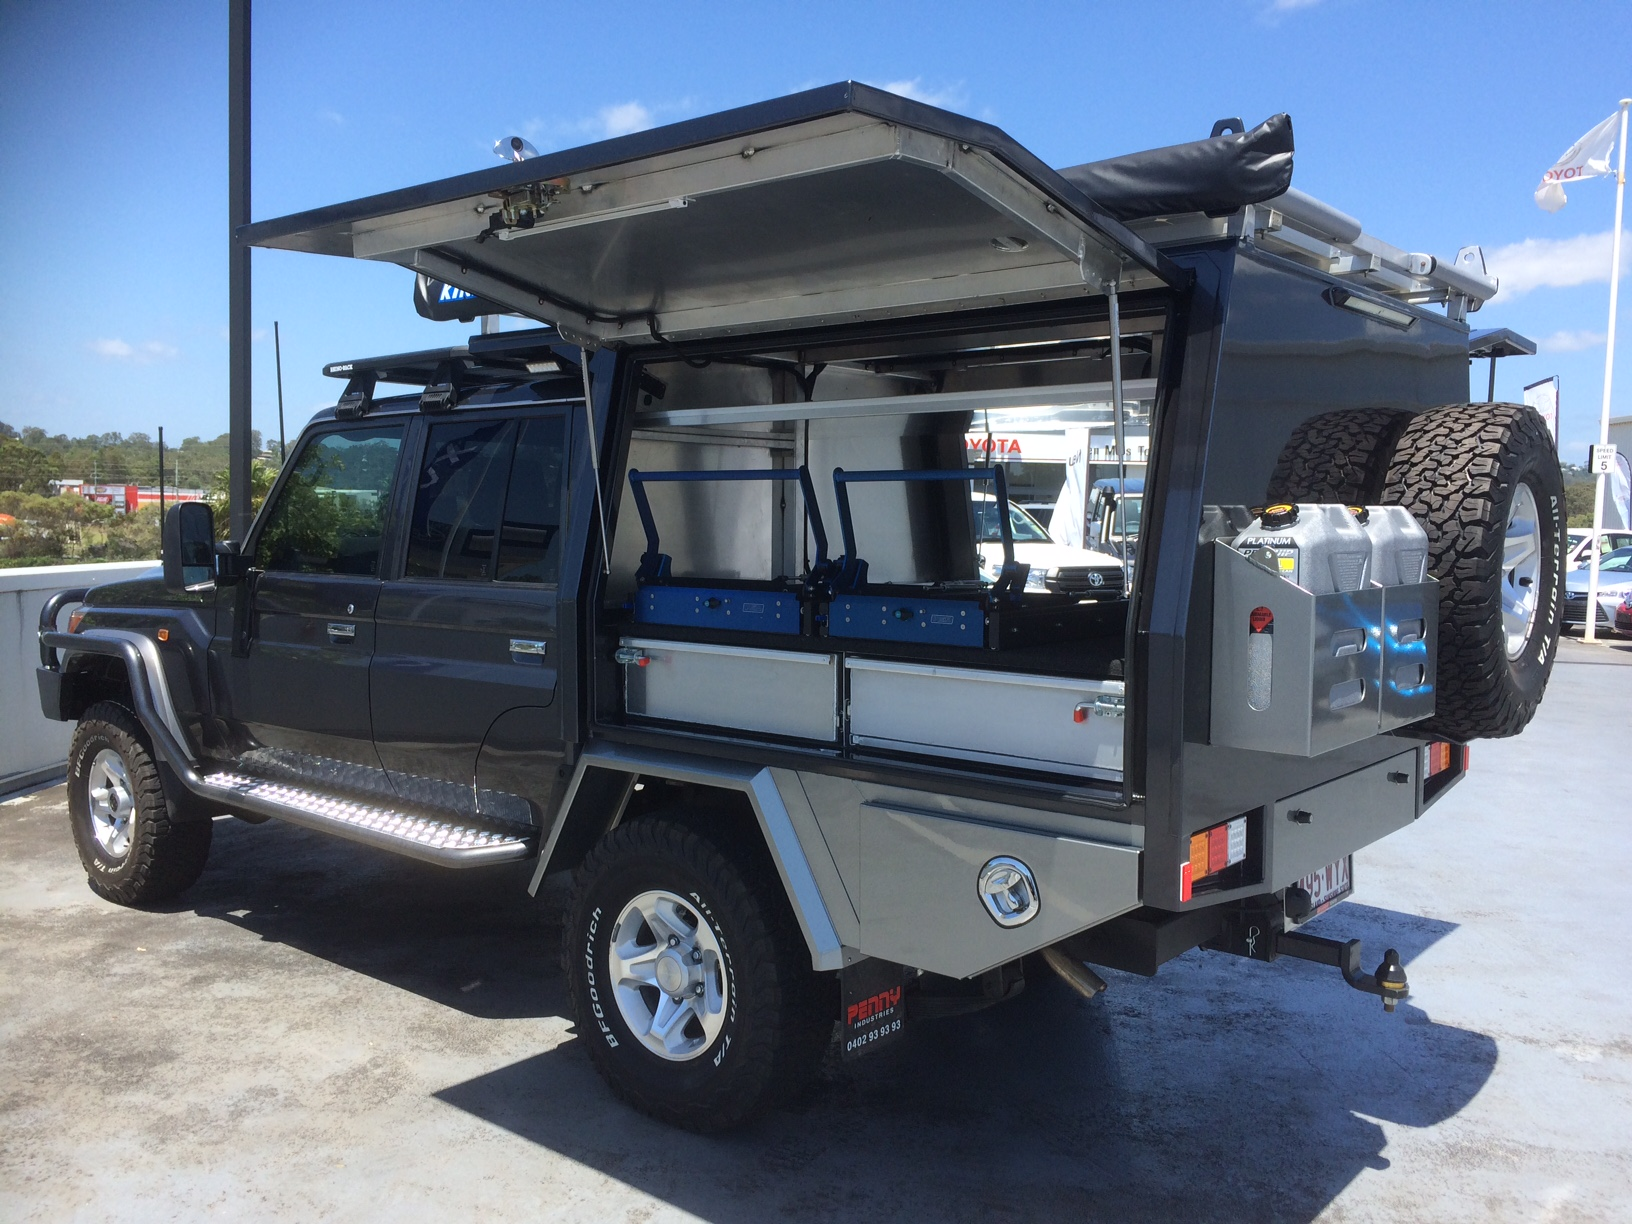 Here are photos of some of the custom aluminium canopies we have done for Toyota Landcruiser owners. & Photos - Canopy - Toyota Landcruiser - Penny Industries